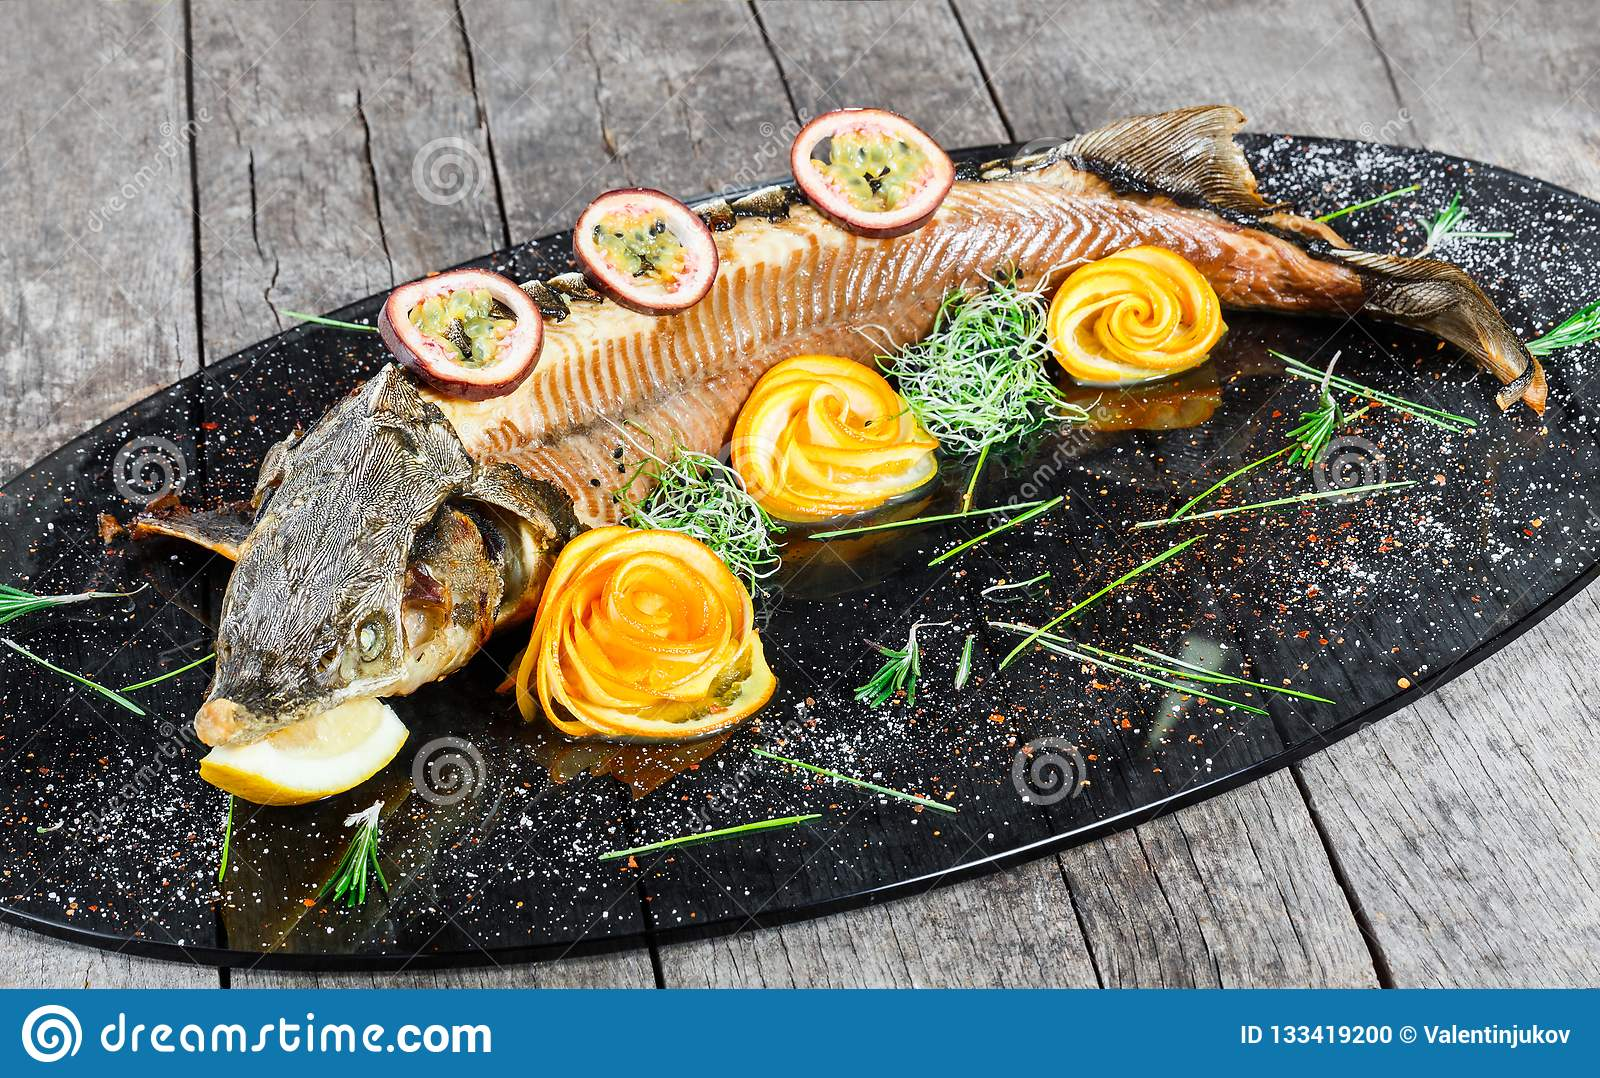 Baked sturgeon fish with rosemary, lemon and passion fruit on plate on wooden background close up.